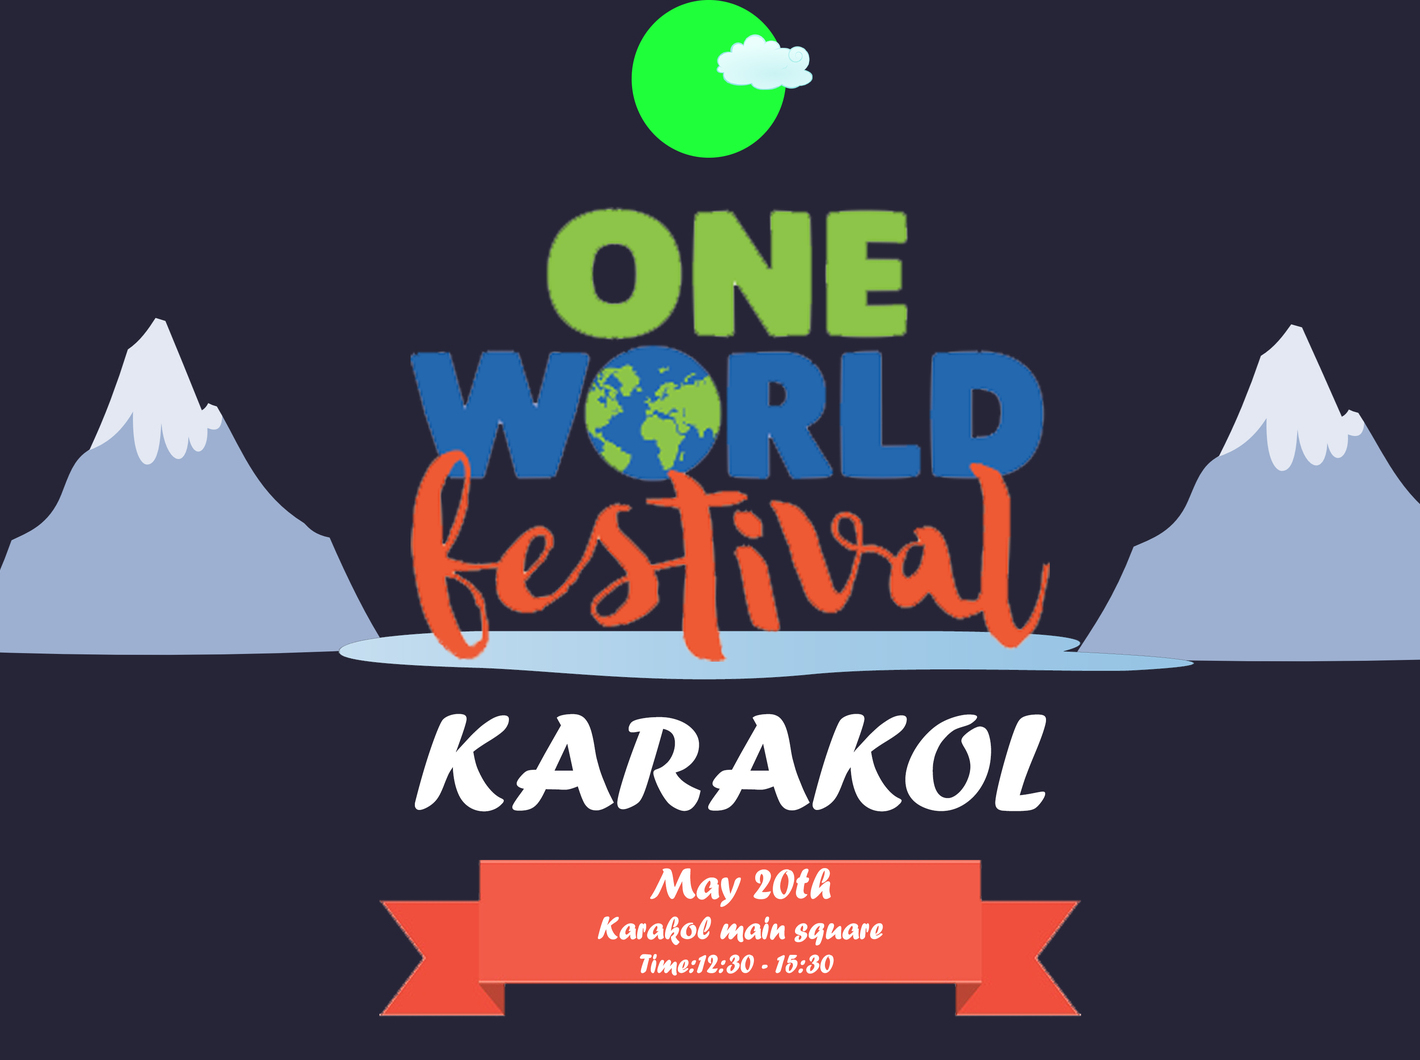 One World Festival - Karakol - (Passed)